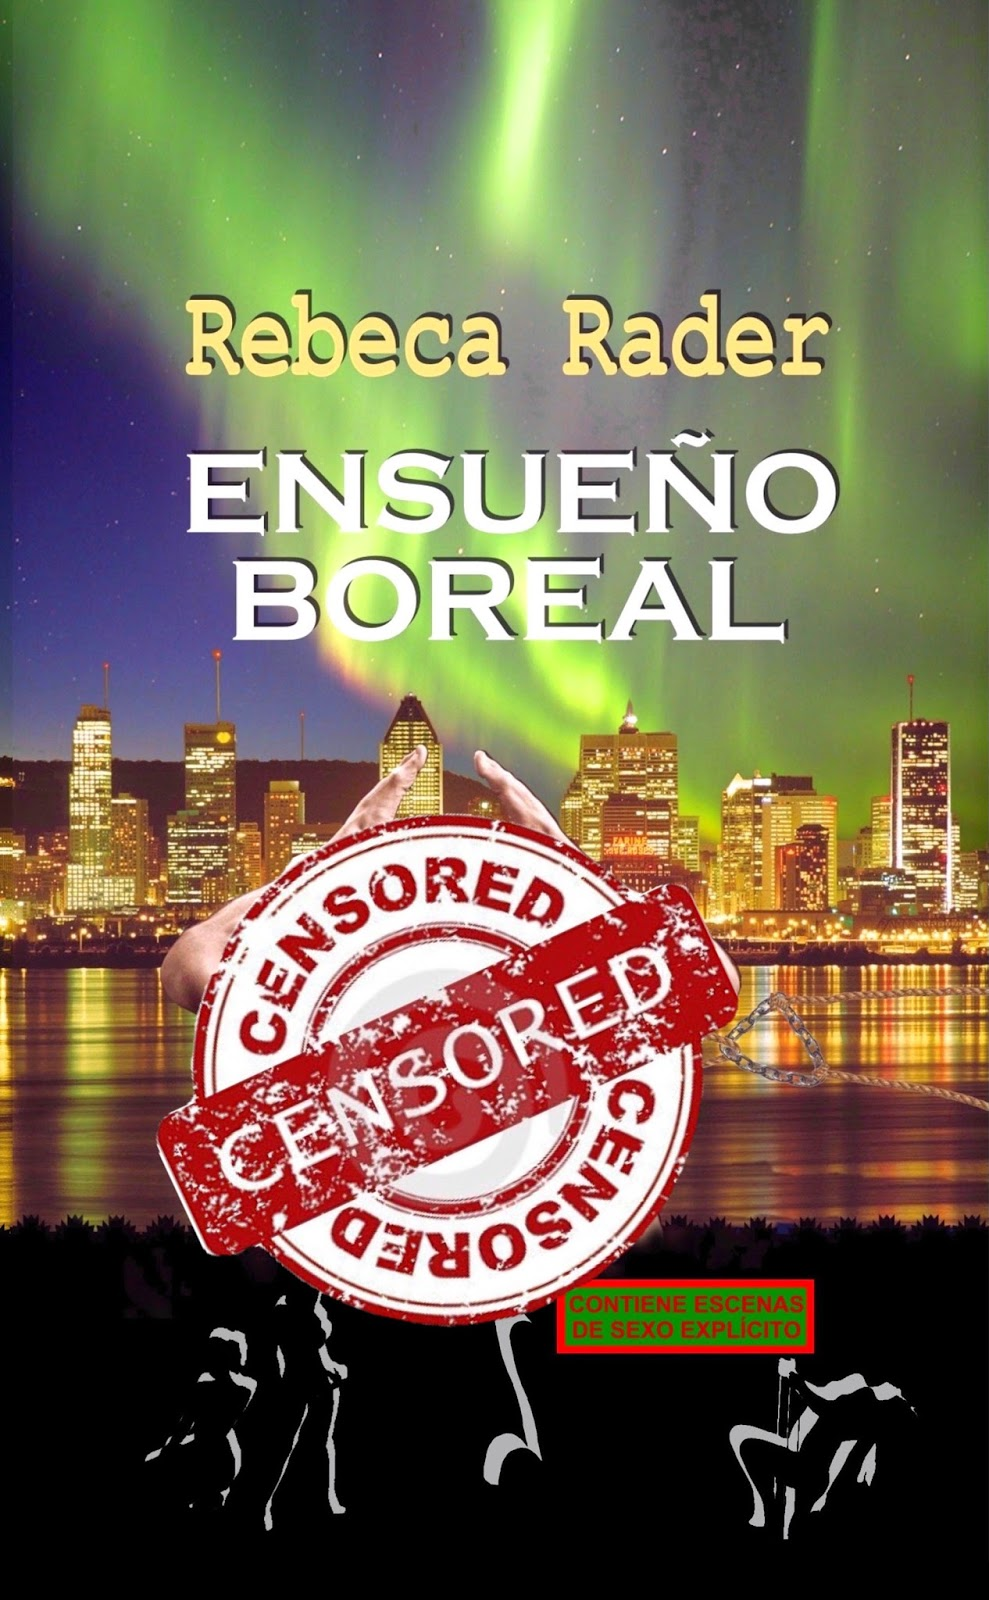 http://www.casadellibro.com/ebook-ensueno-boreal-ebook/9788461692897/2307773